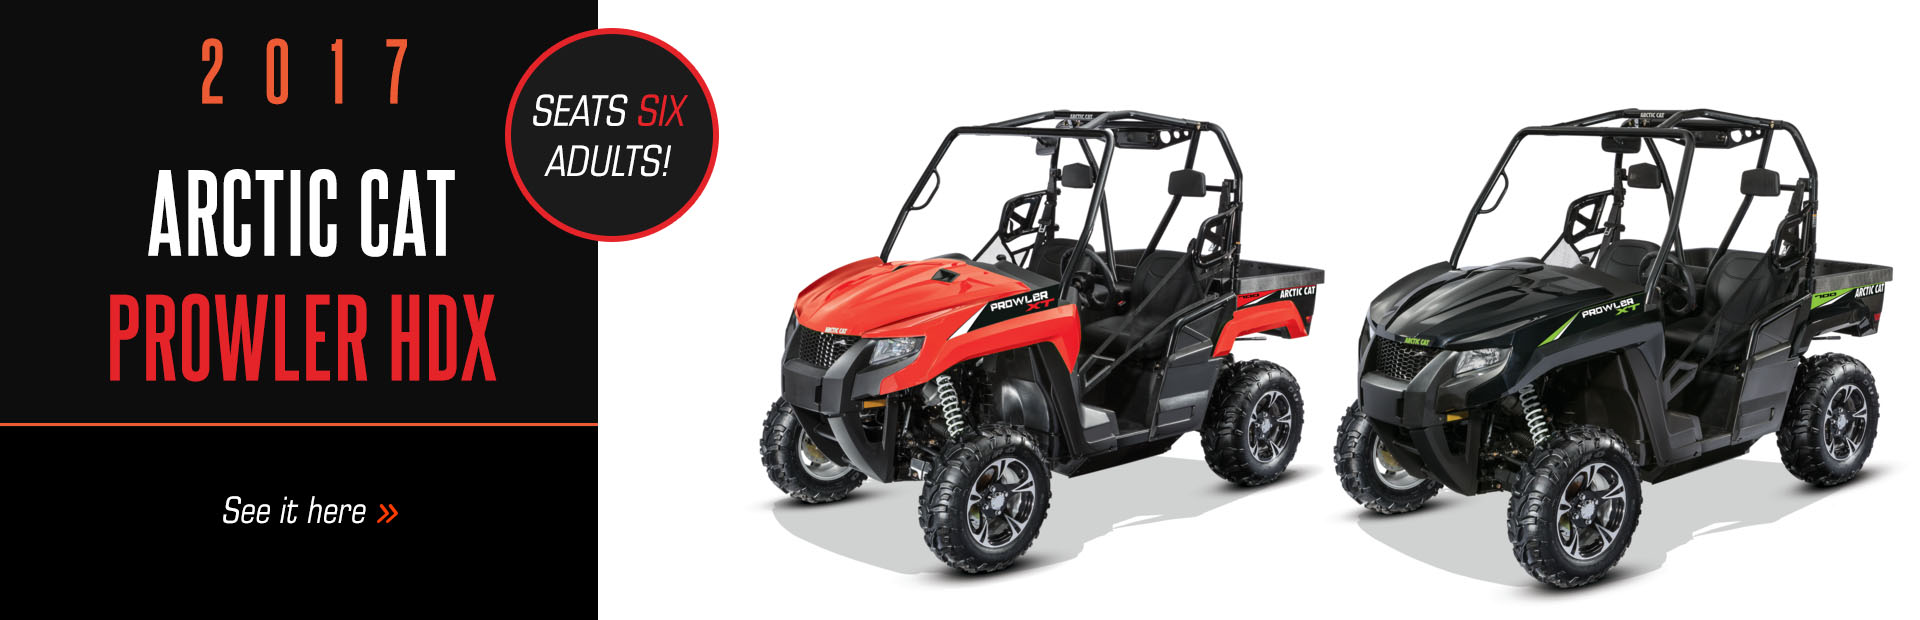 The 2017 Arctic Cat Prowler HDX seats six adults! Click here to see our selection.